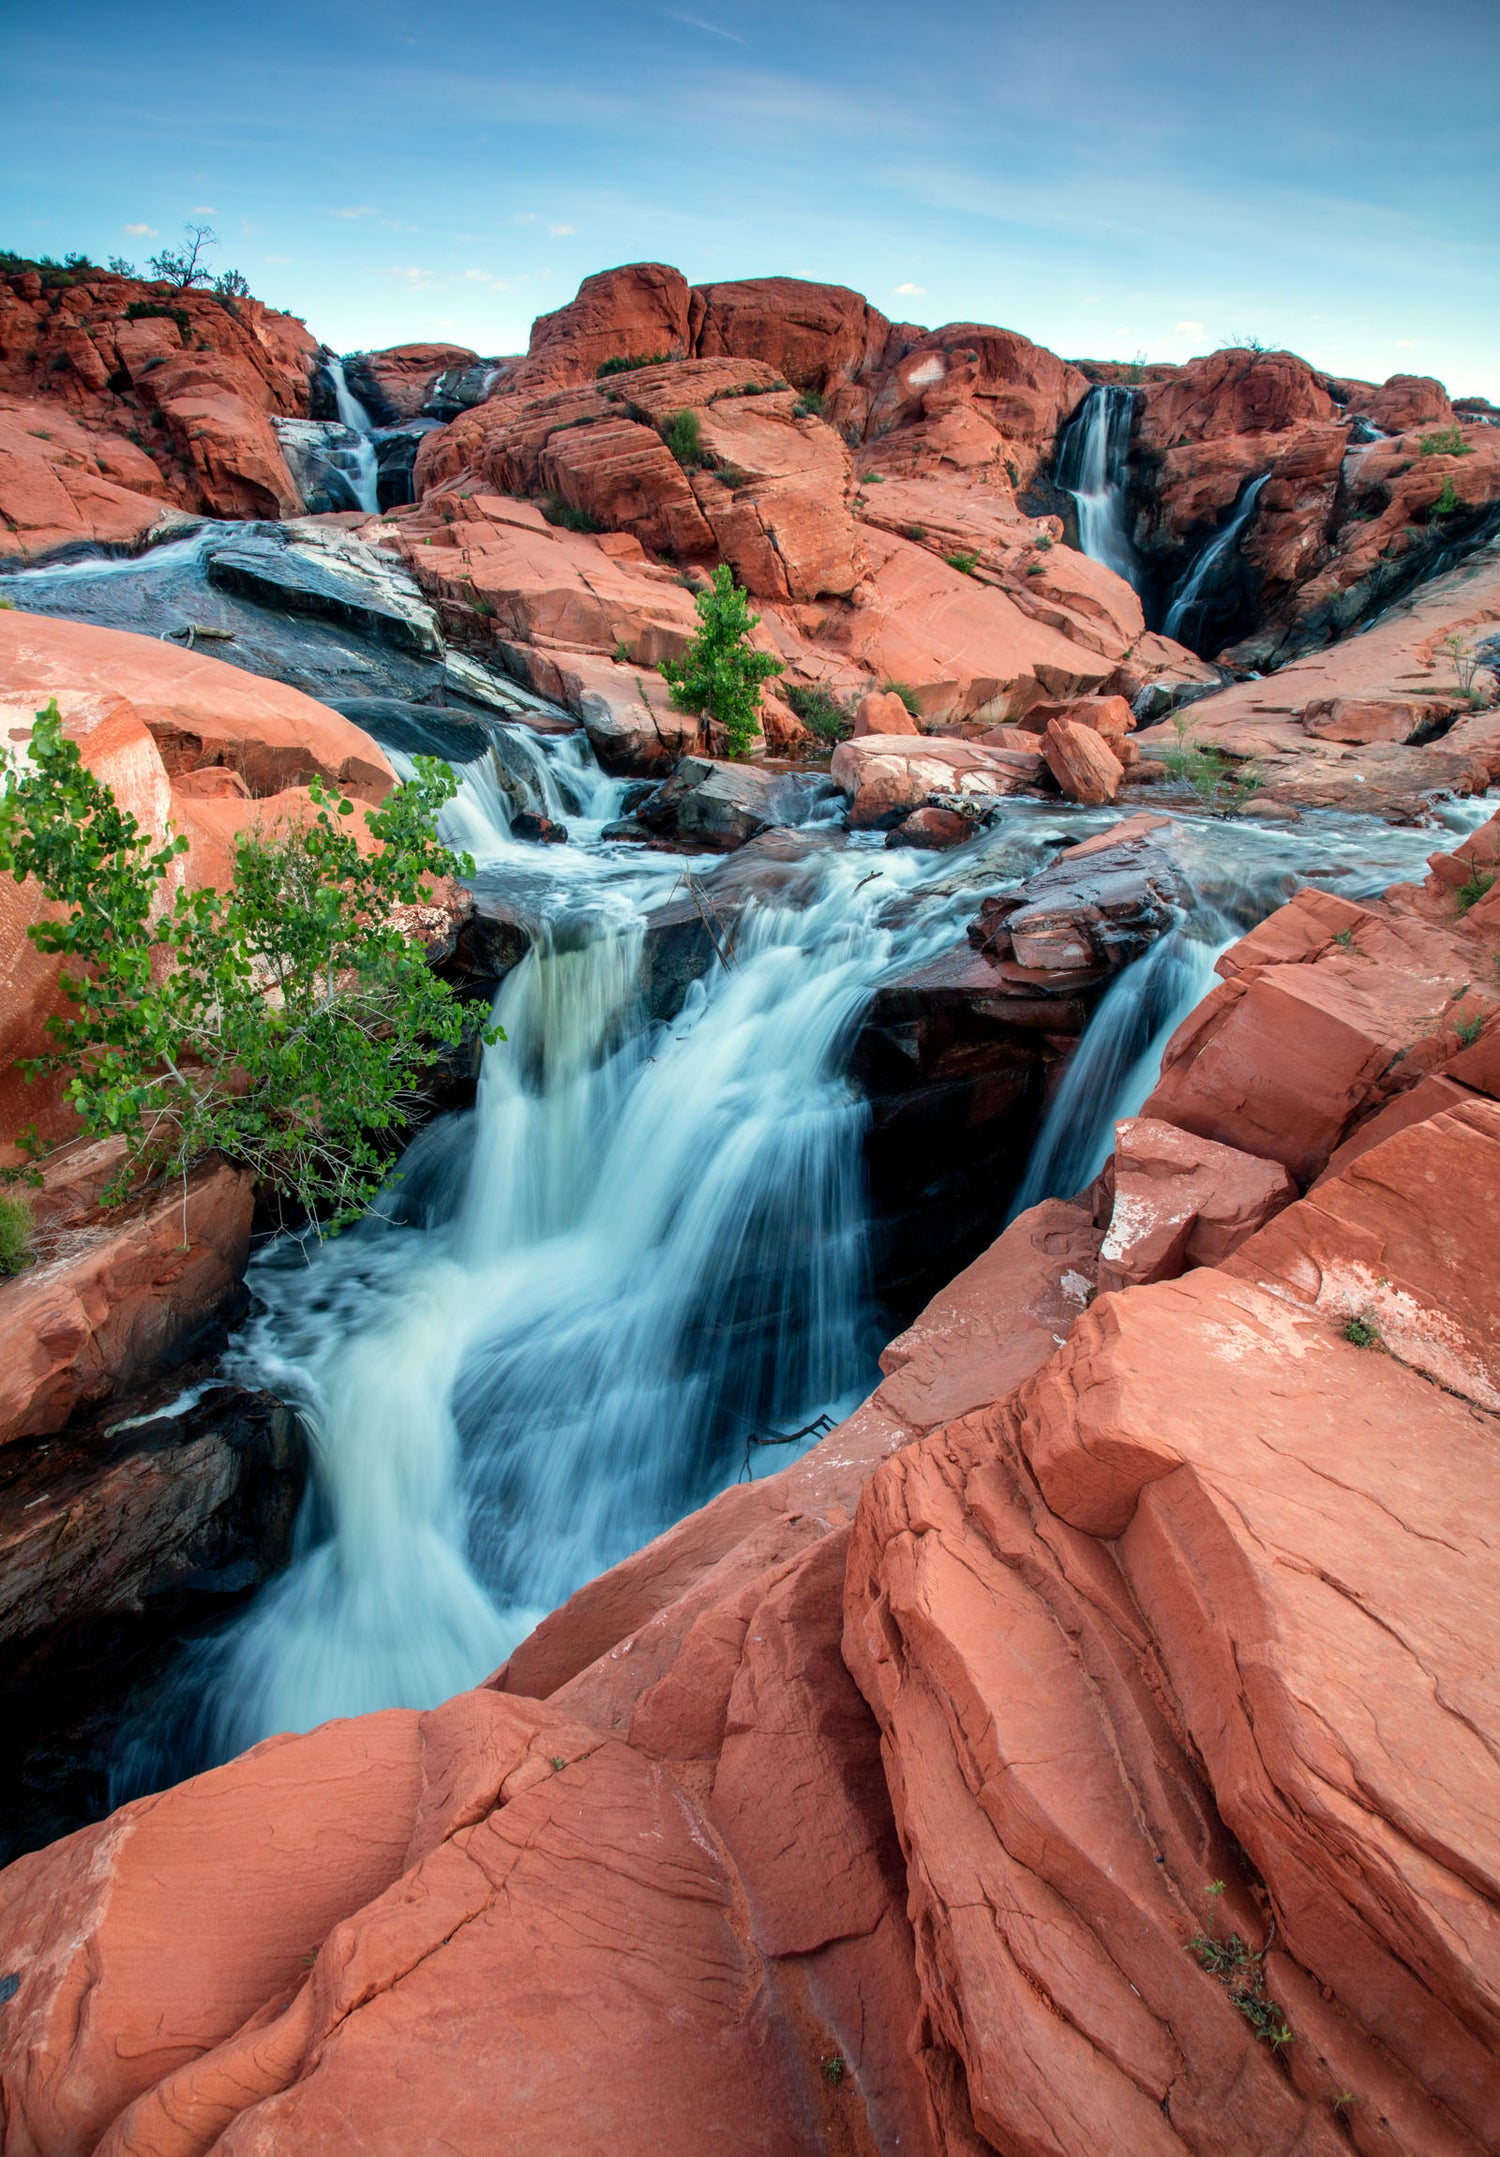 Image of Falls at Gunlock